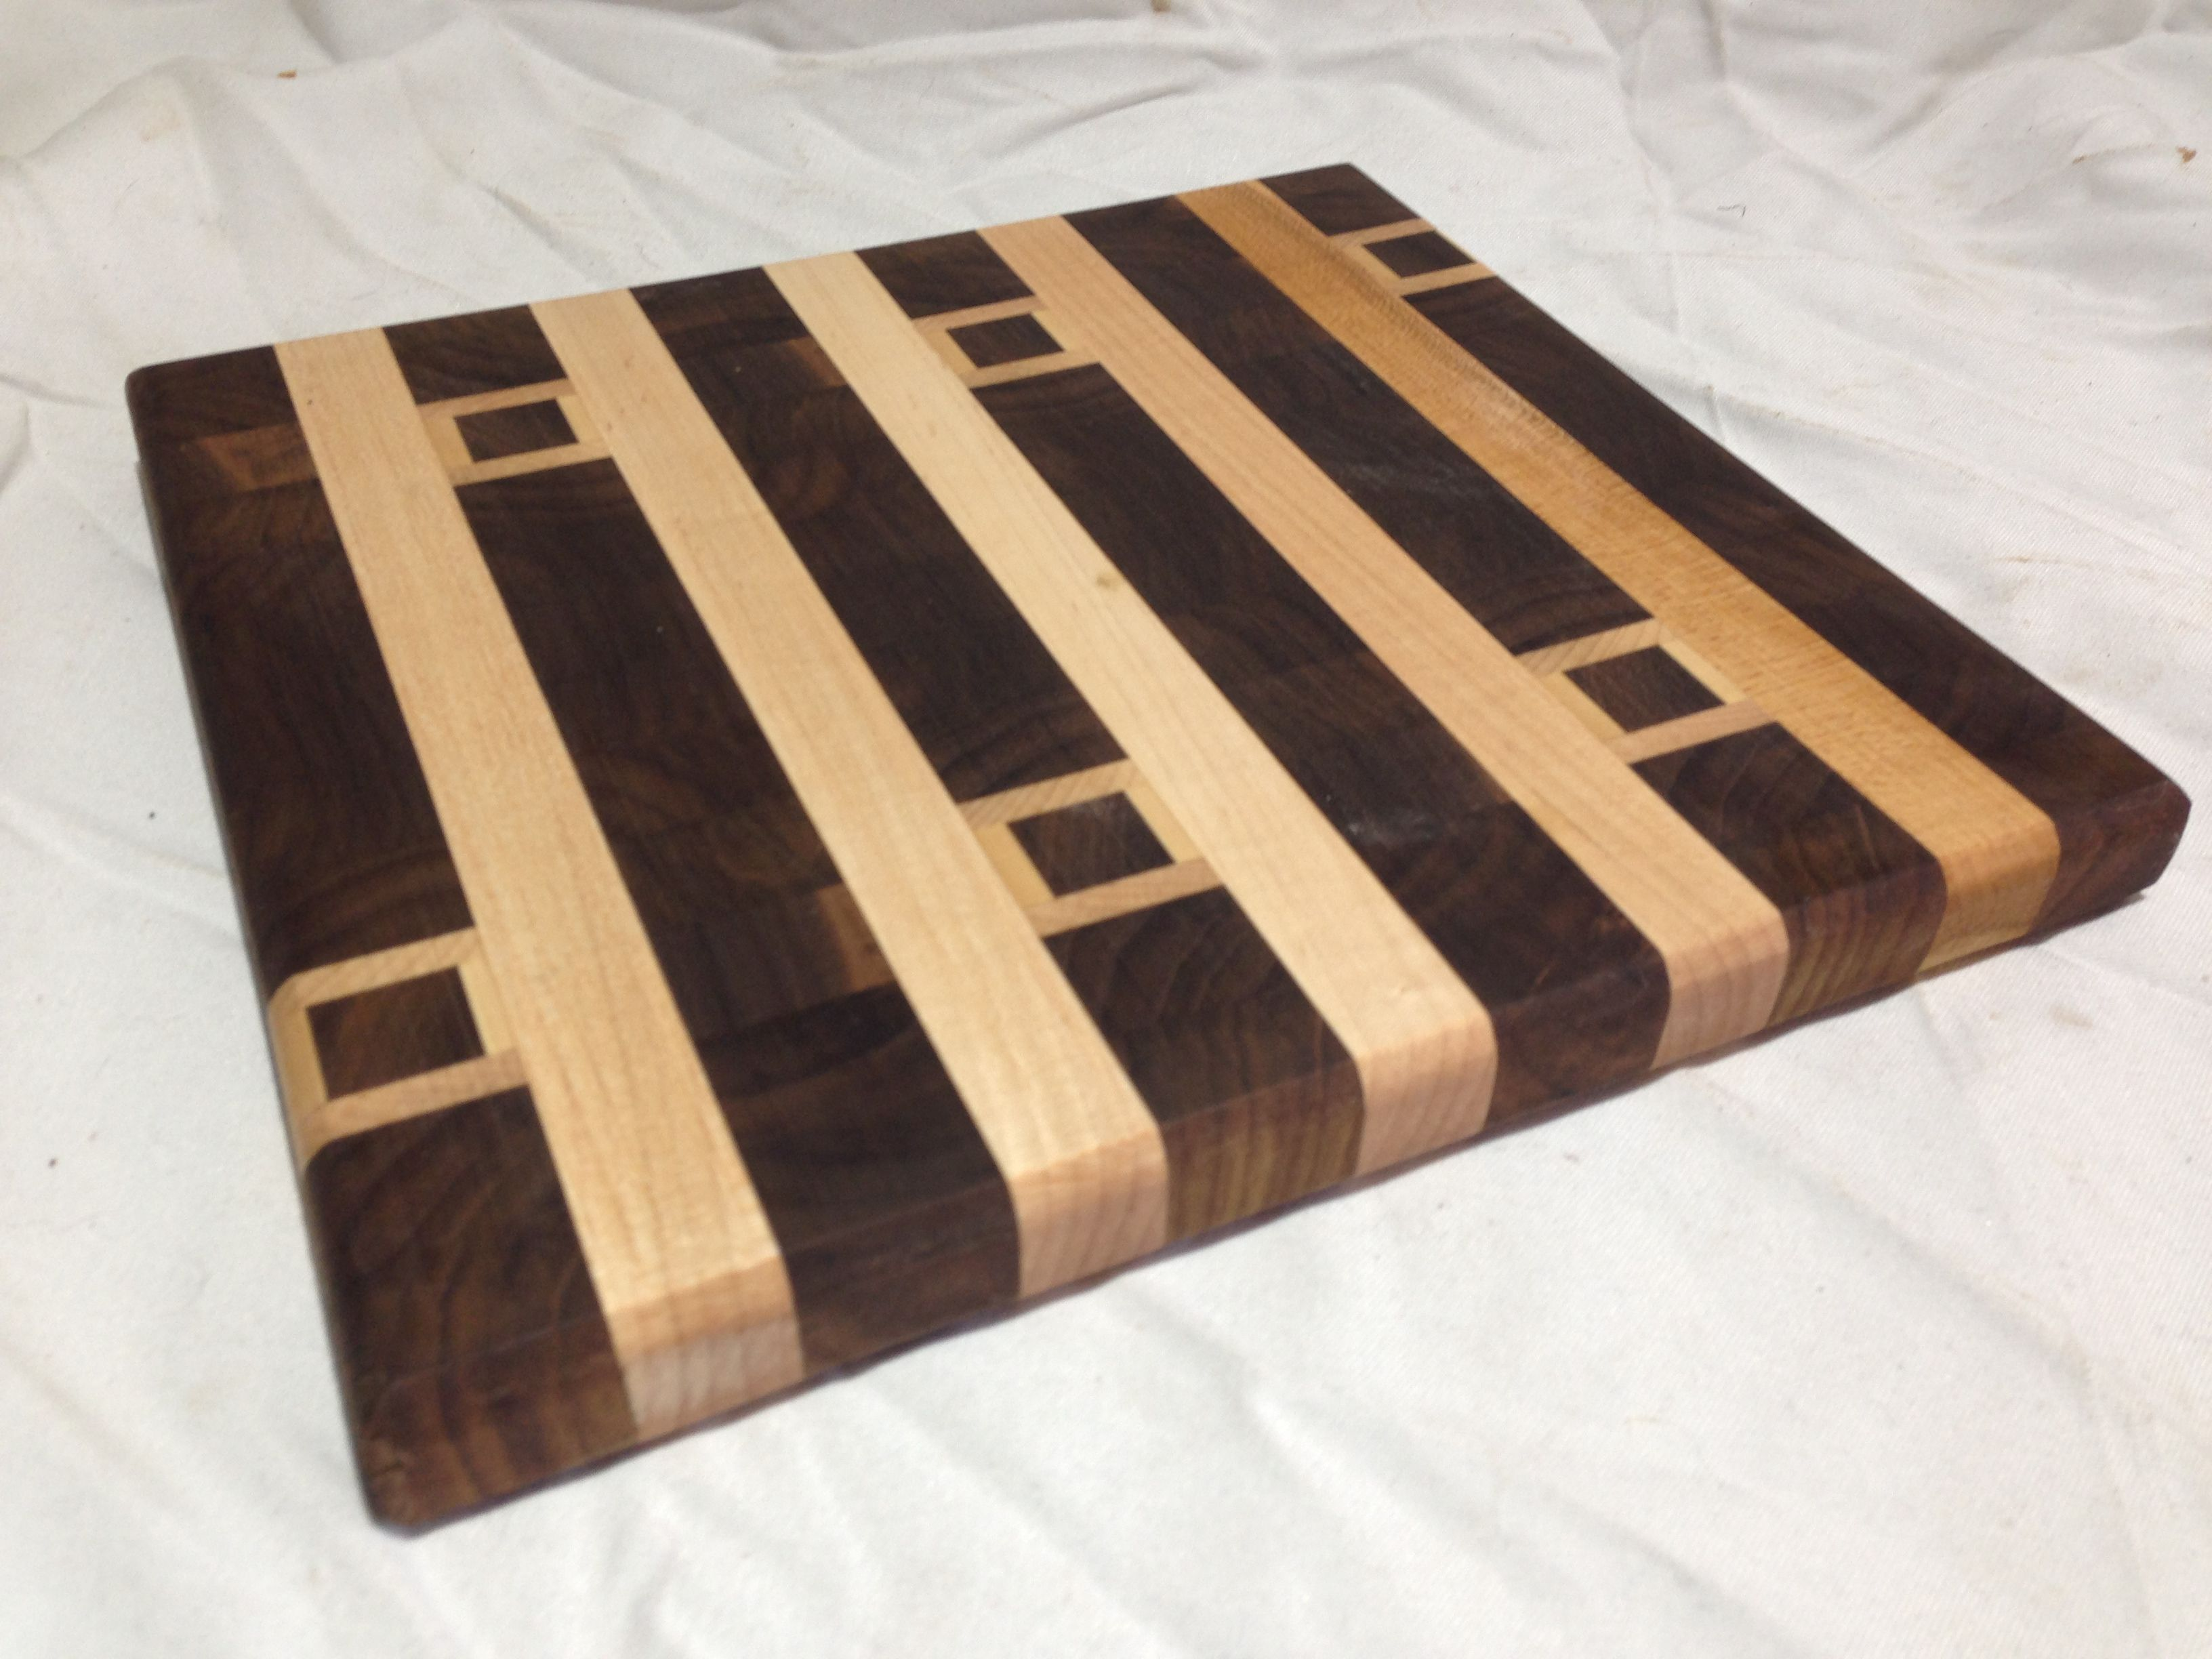 Unusual Cutting Boards What A Unique Design For A Cutting Board Black Walnut And